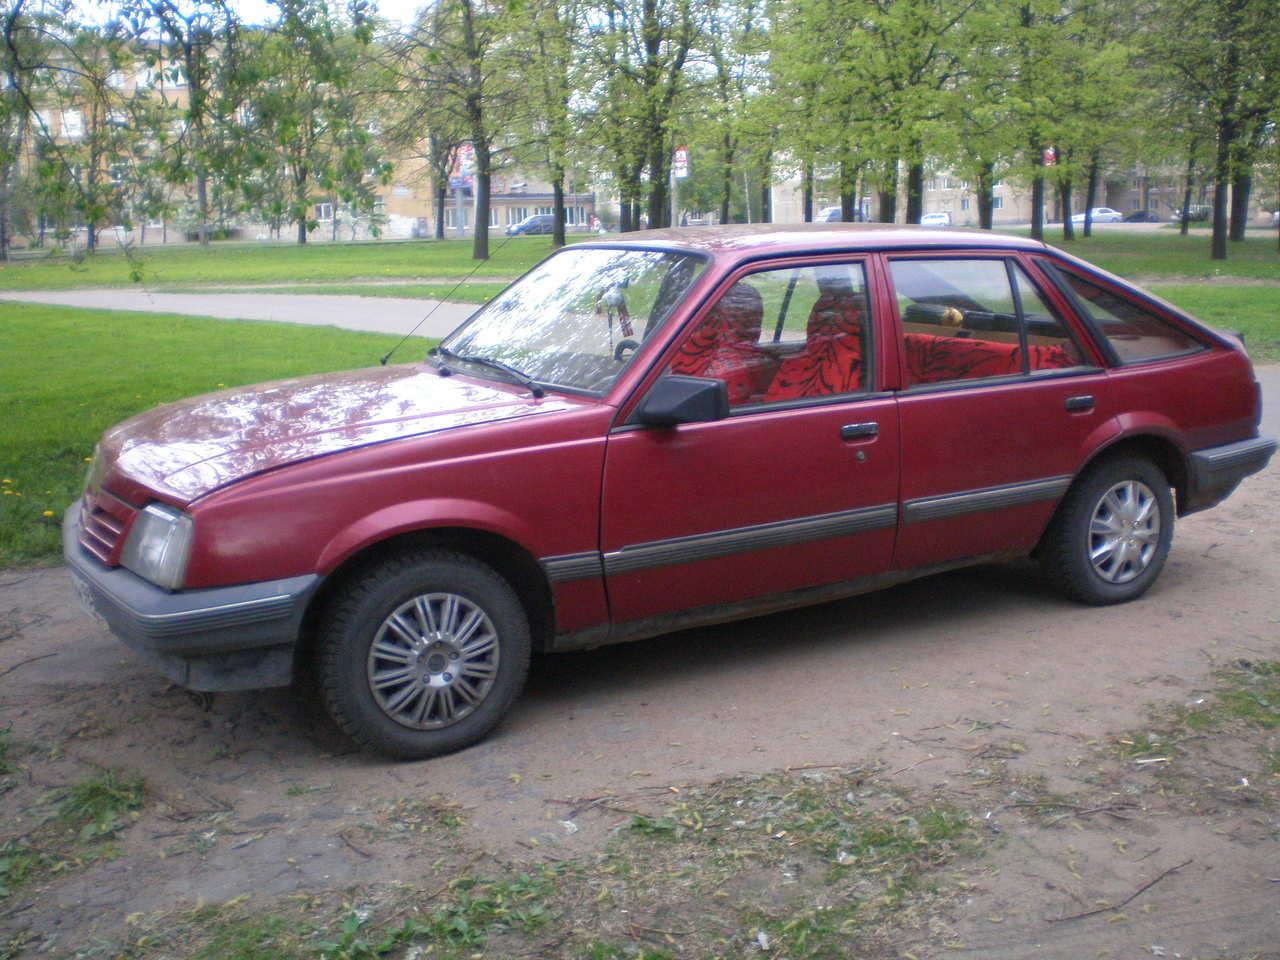 1989 Opel Ascona Specs Fuel Type Gasoline Drive Wheels Ff Transmission Gearbox Manual